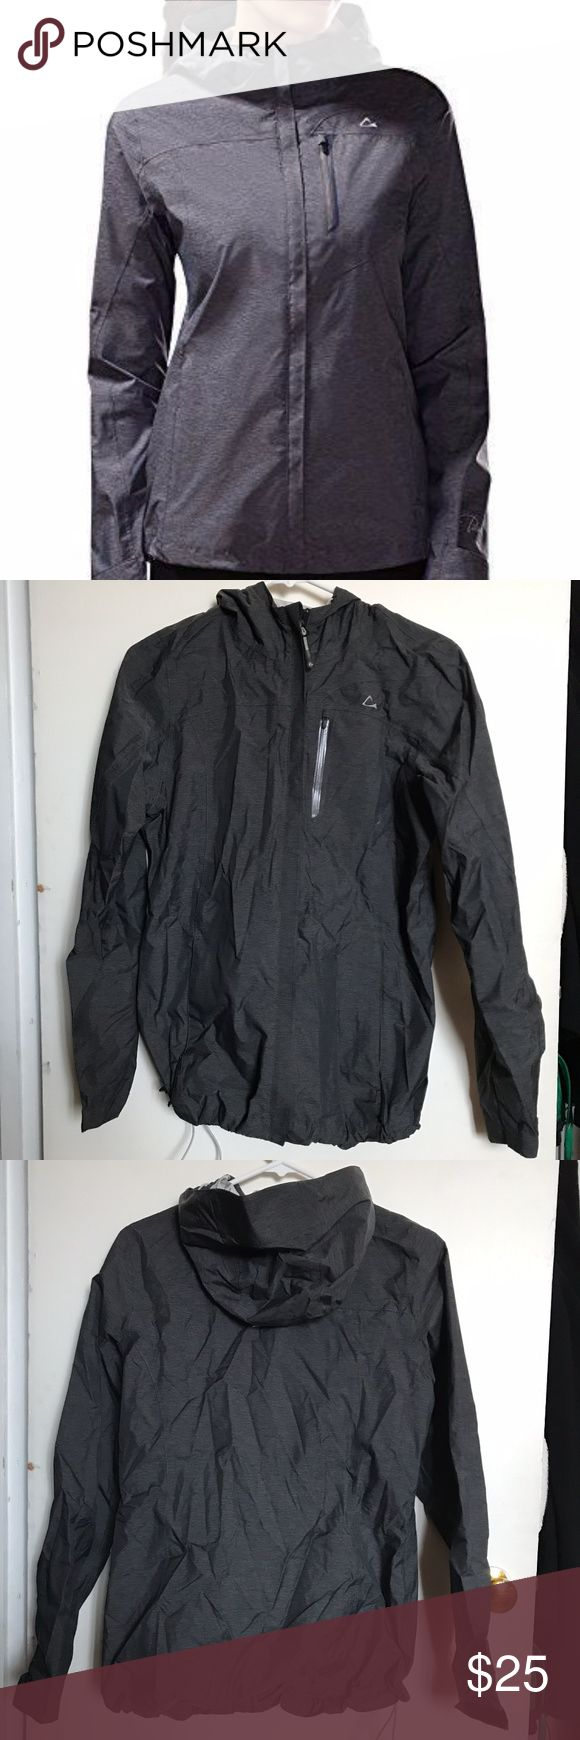 Paradox Women's Rain Jacket Accepting offers! No trades. Paradox Women's Rain Jacket; water-proof, has drawstring at the bottom to adjust fittedness, velcro straps on wrists, and chest pocket with headphone opening inside. Women's Medium. Paradox Jackets & Coats